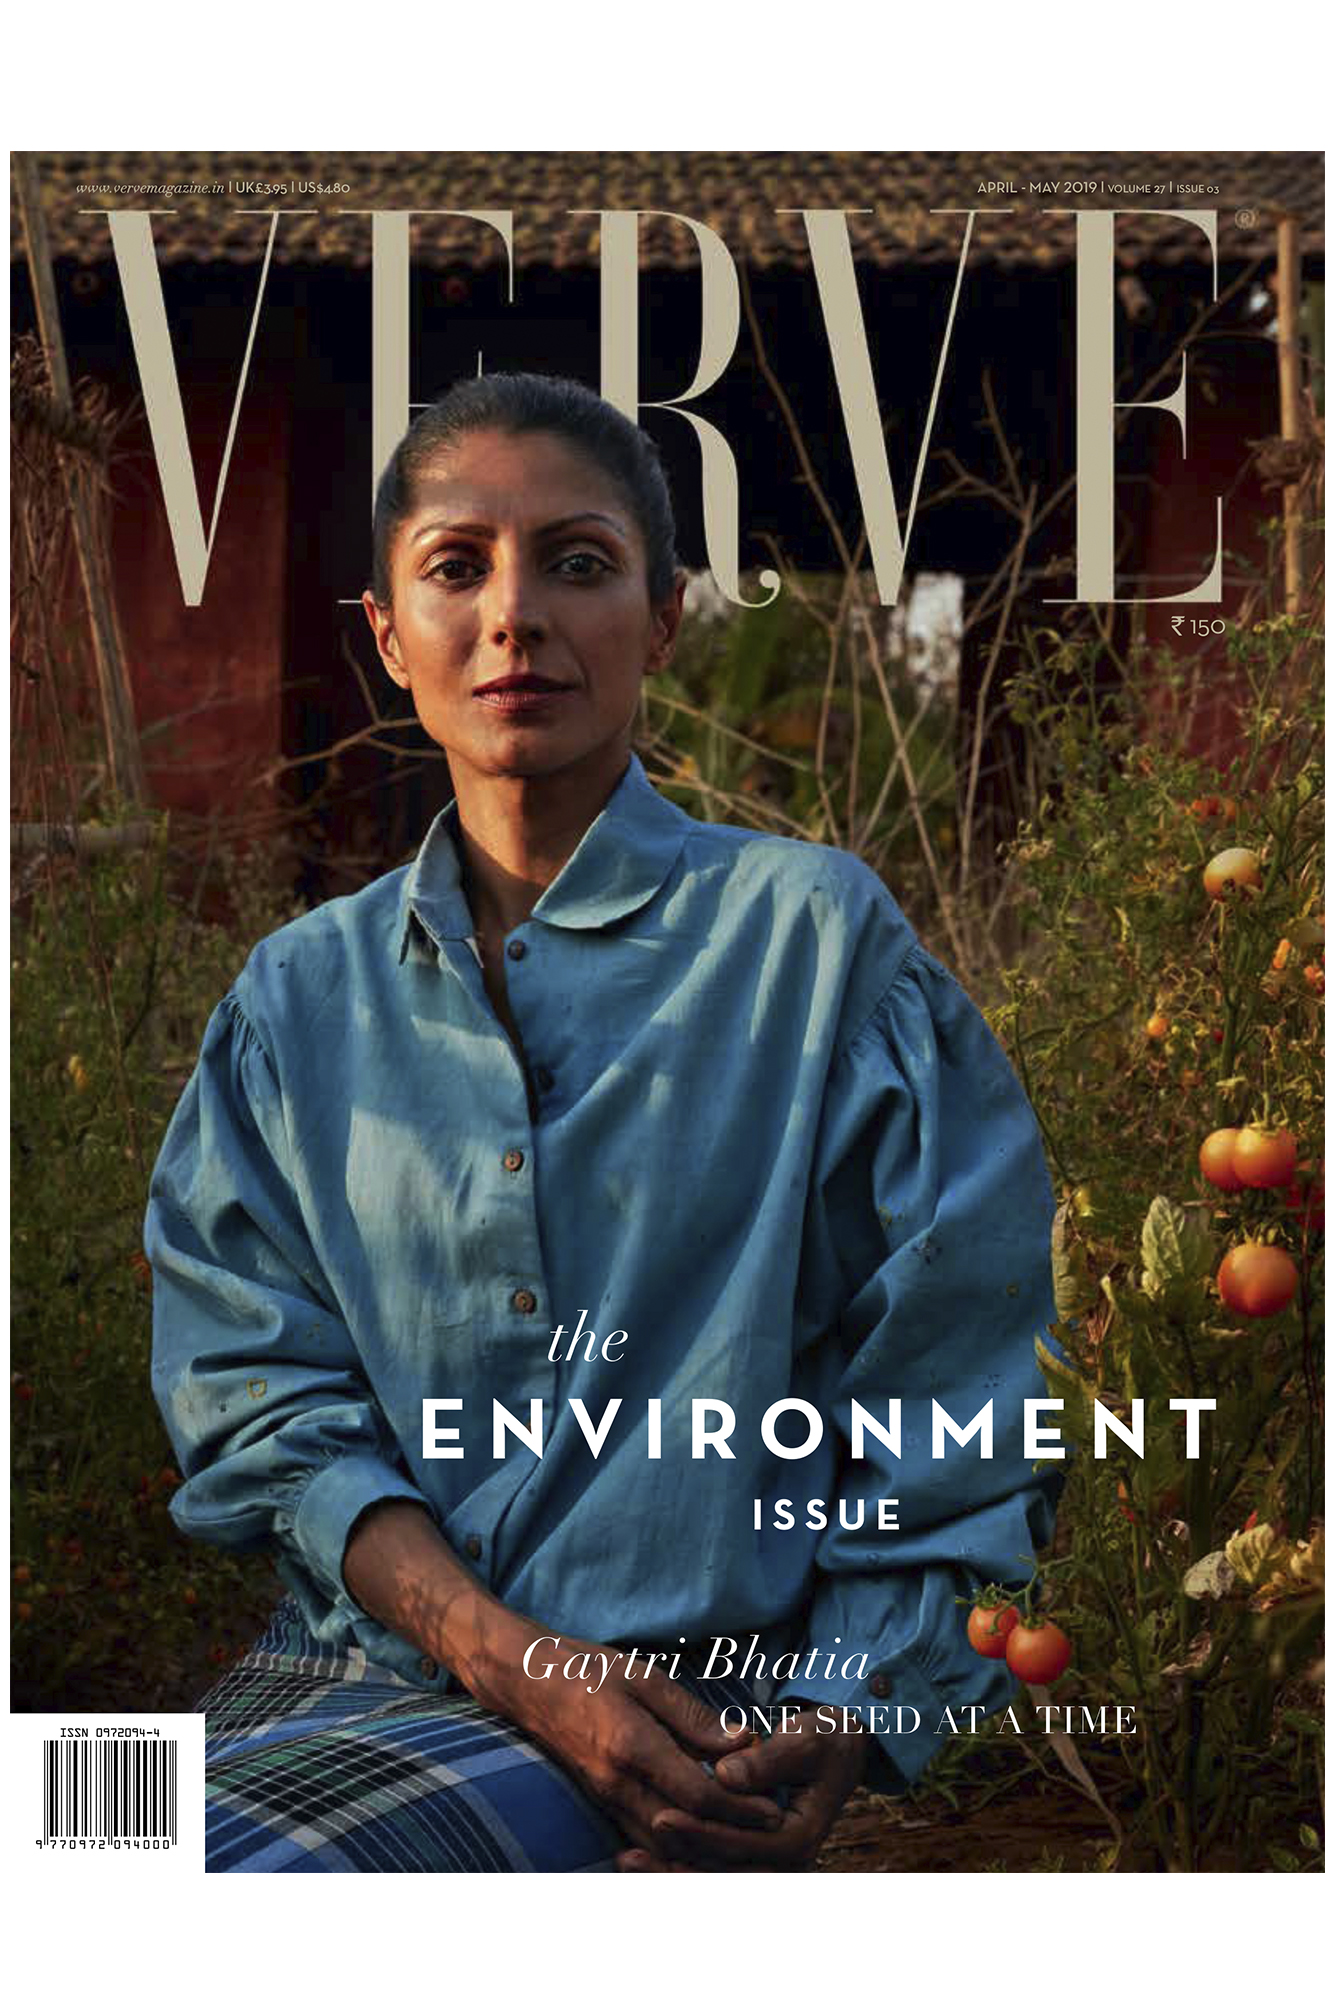 Verve India Cover Story May '19